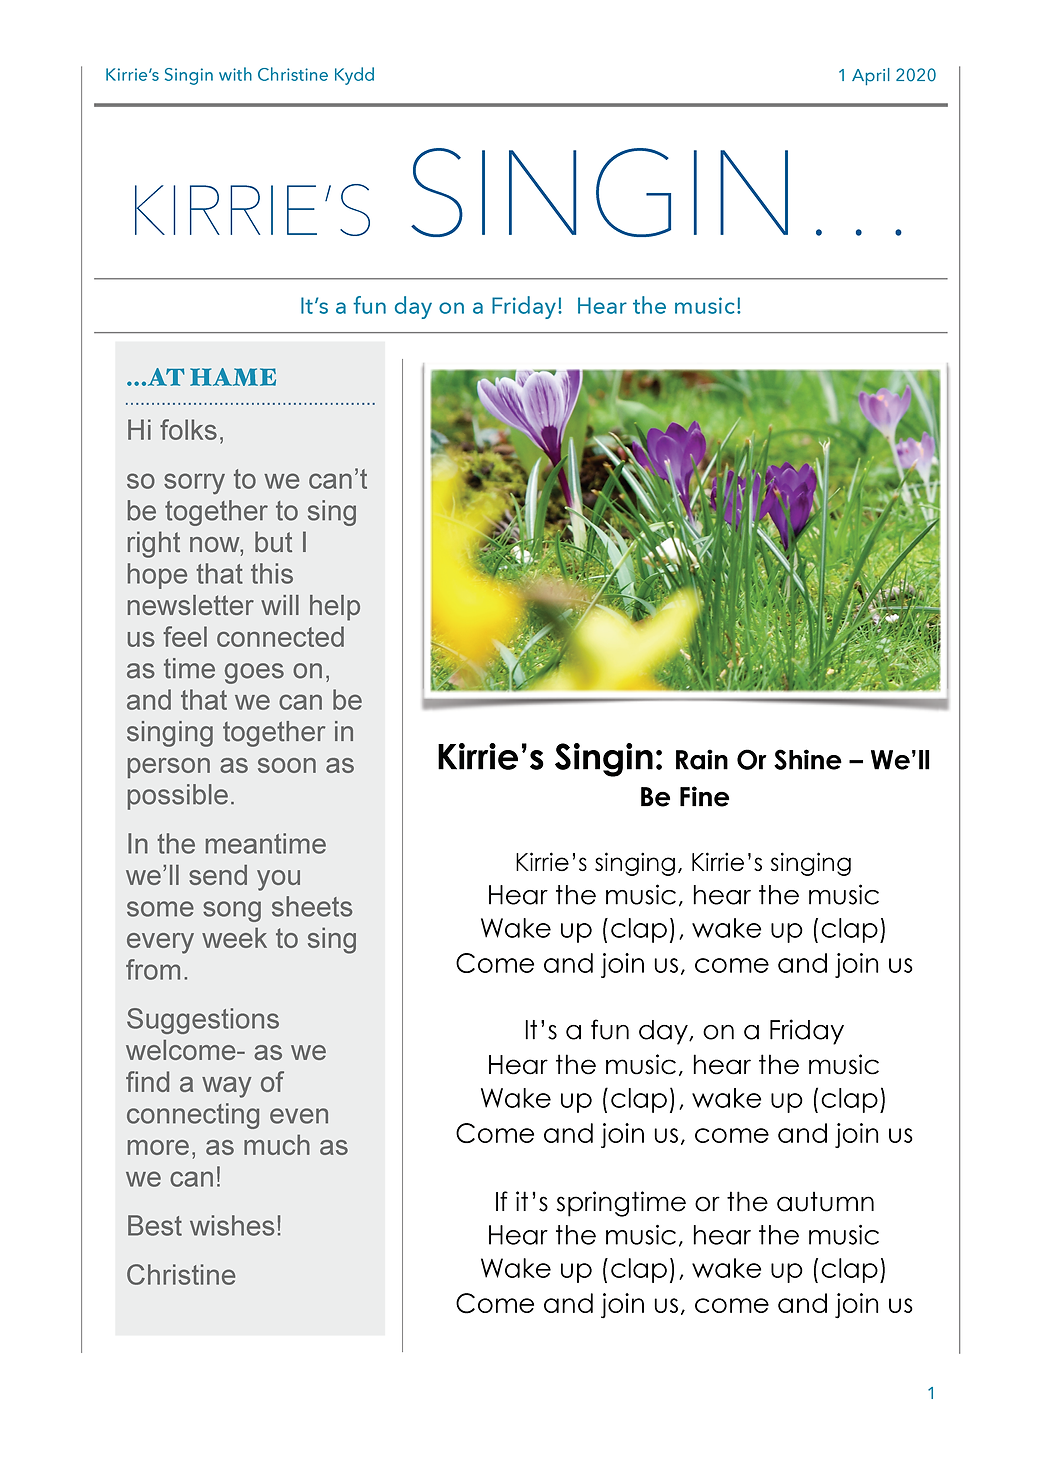 Kirrie's Singin..first week in April New